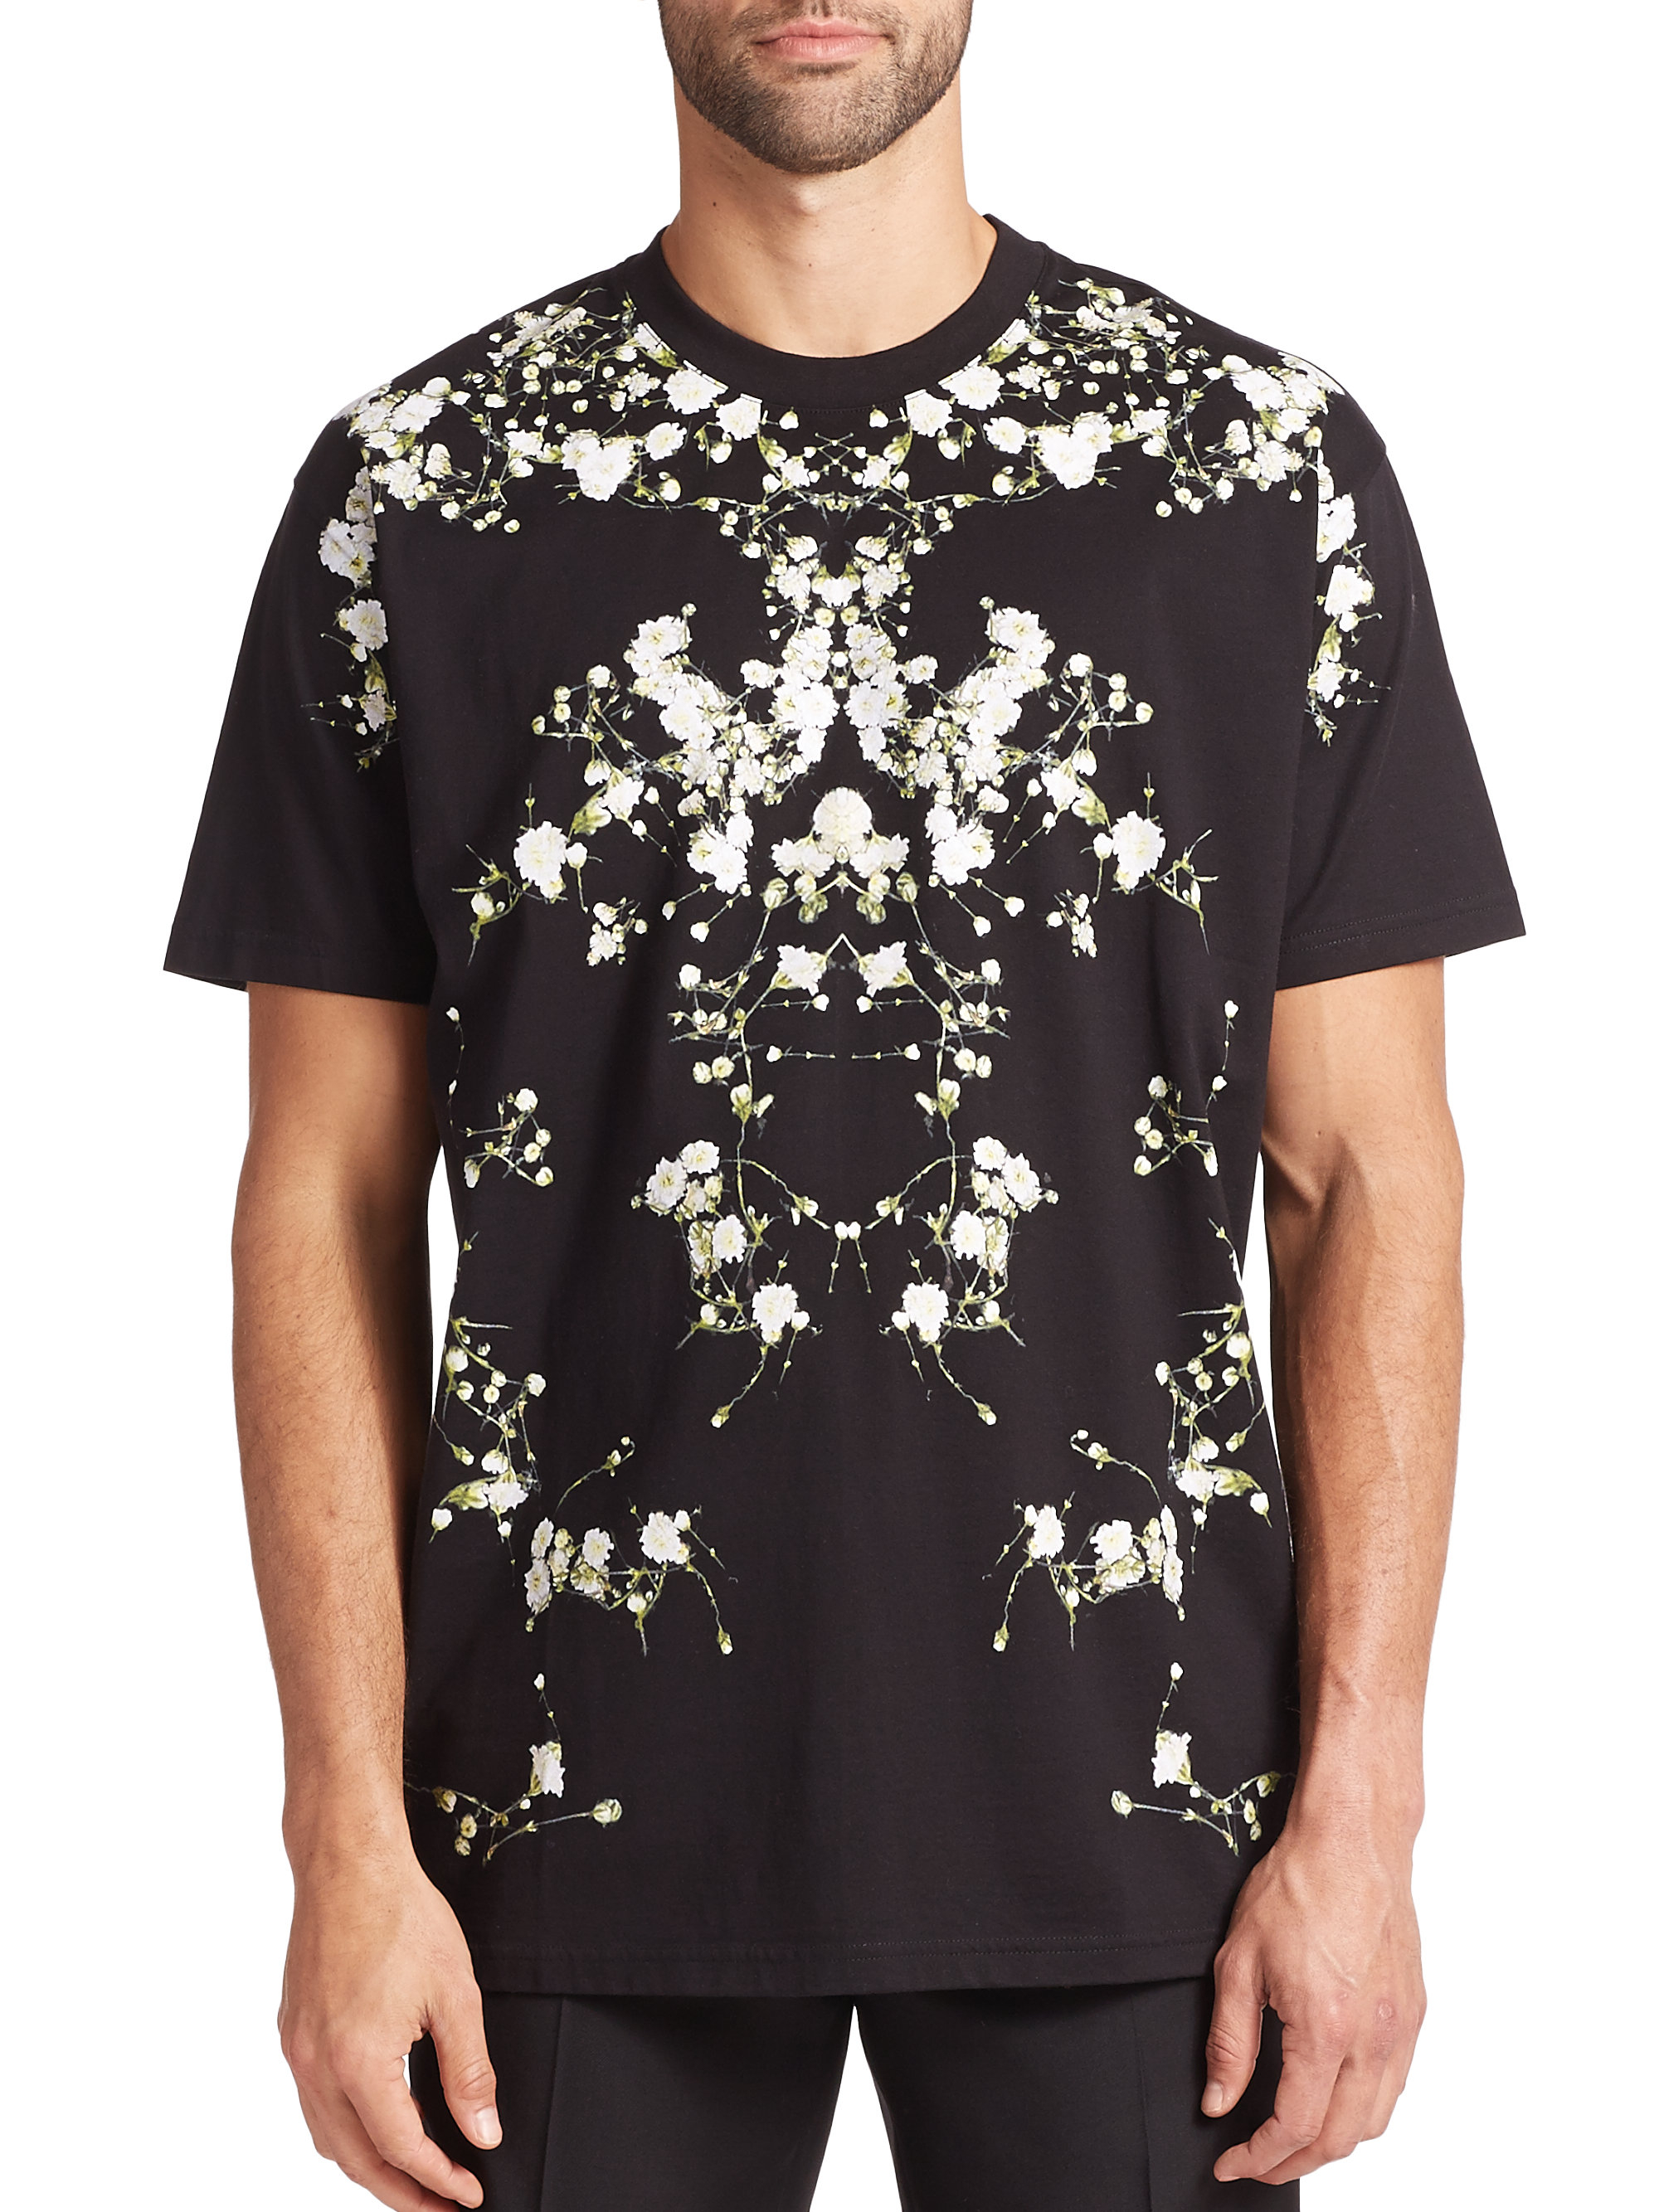 Givenchy Floral T Shirt In Black For Men Lyst